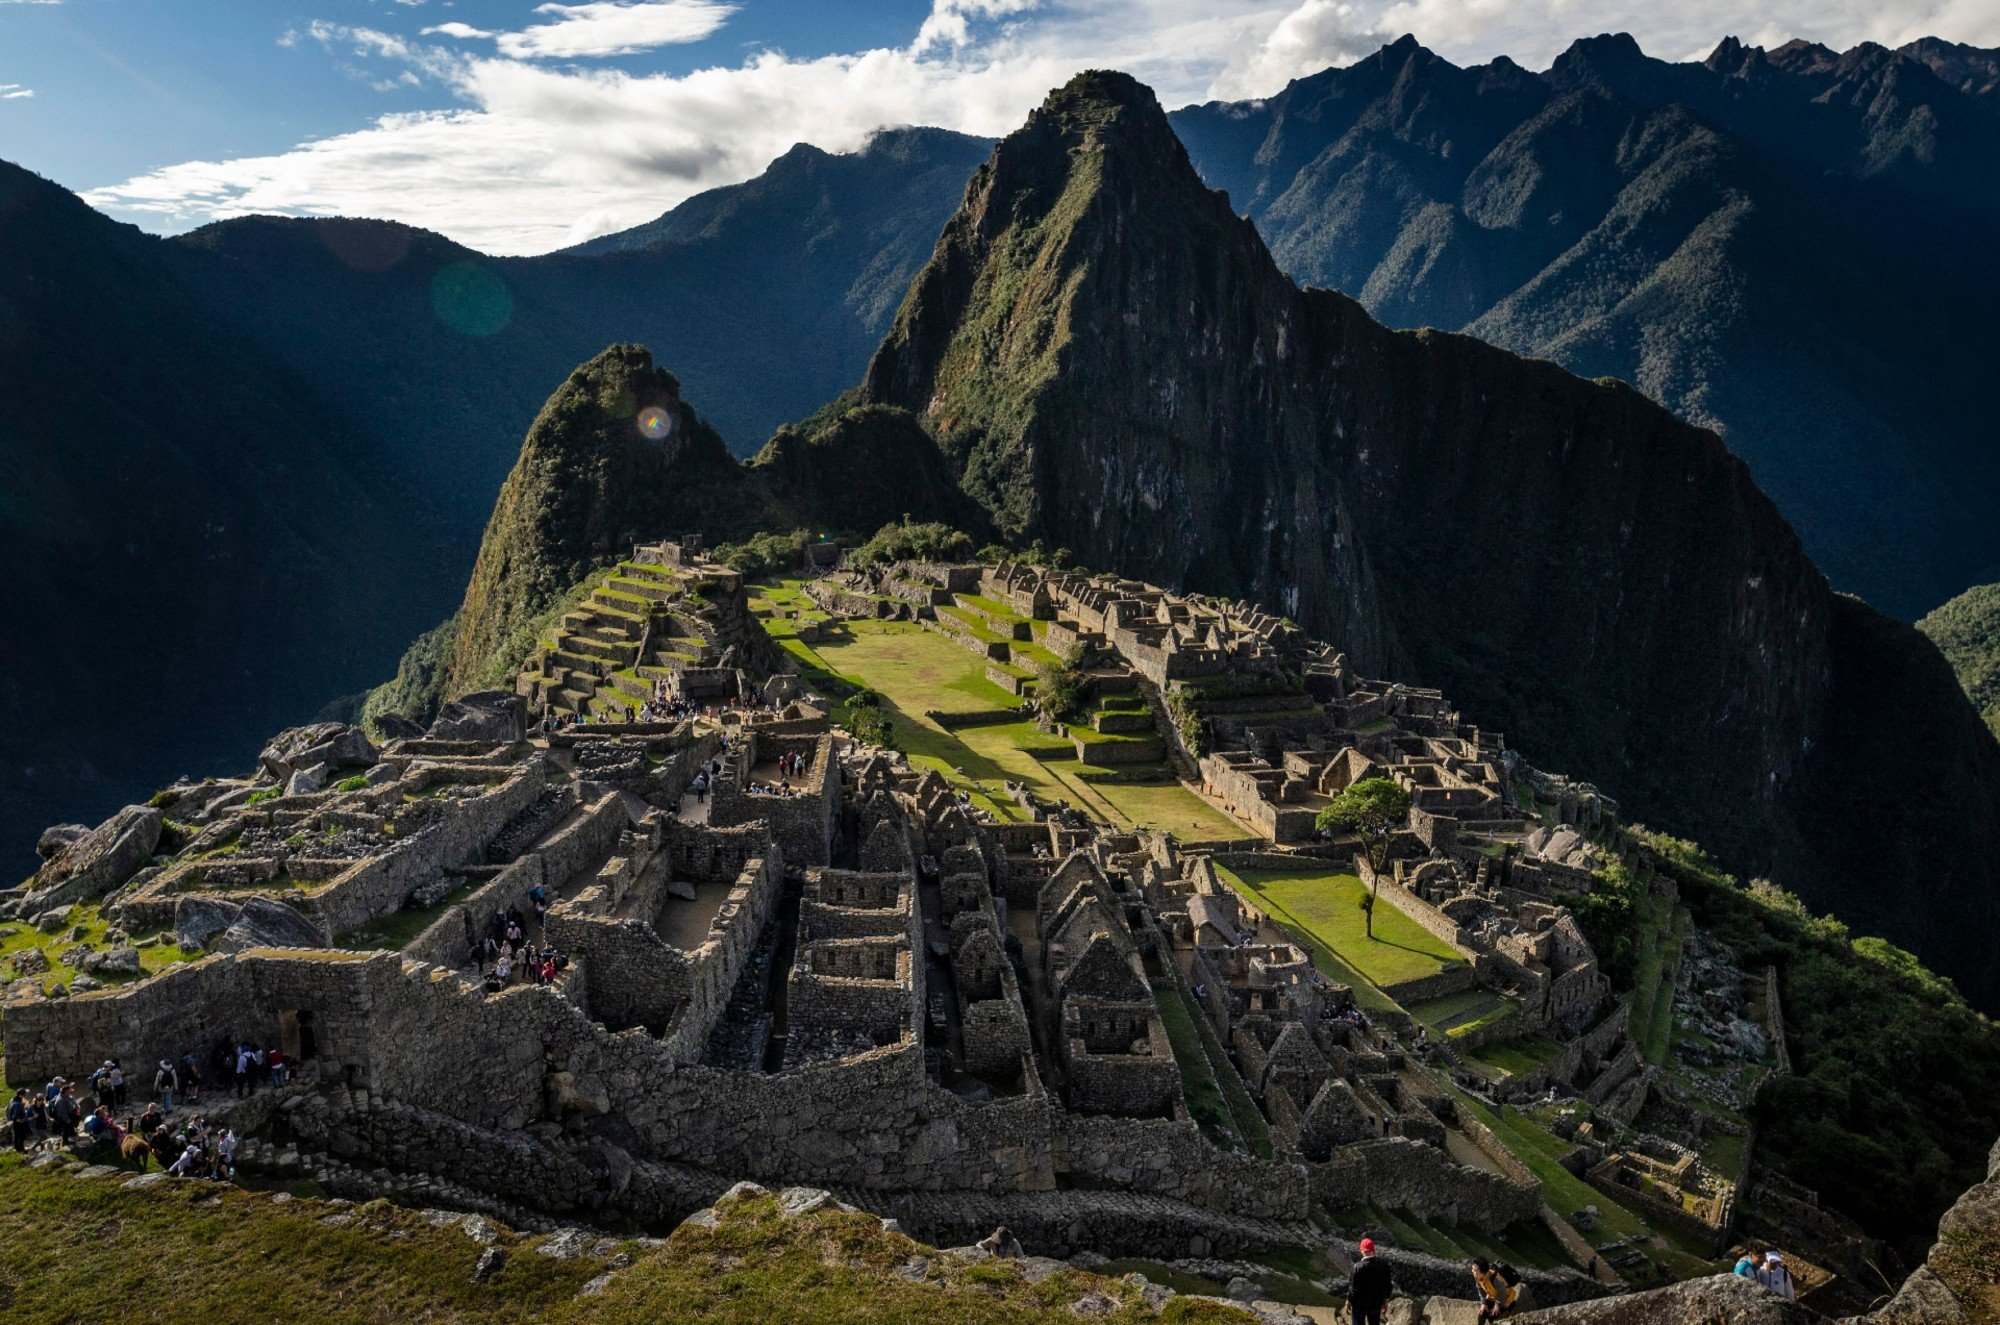 Machu Picchu: The Inca City in Peru Is Older Than Expected